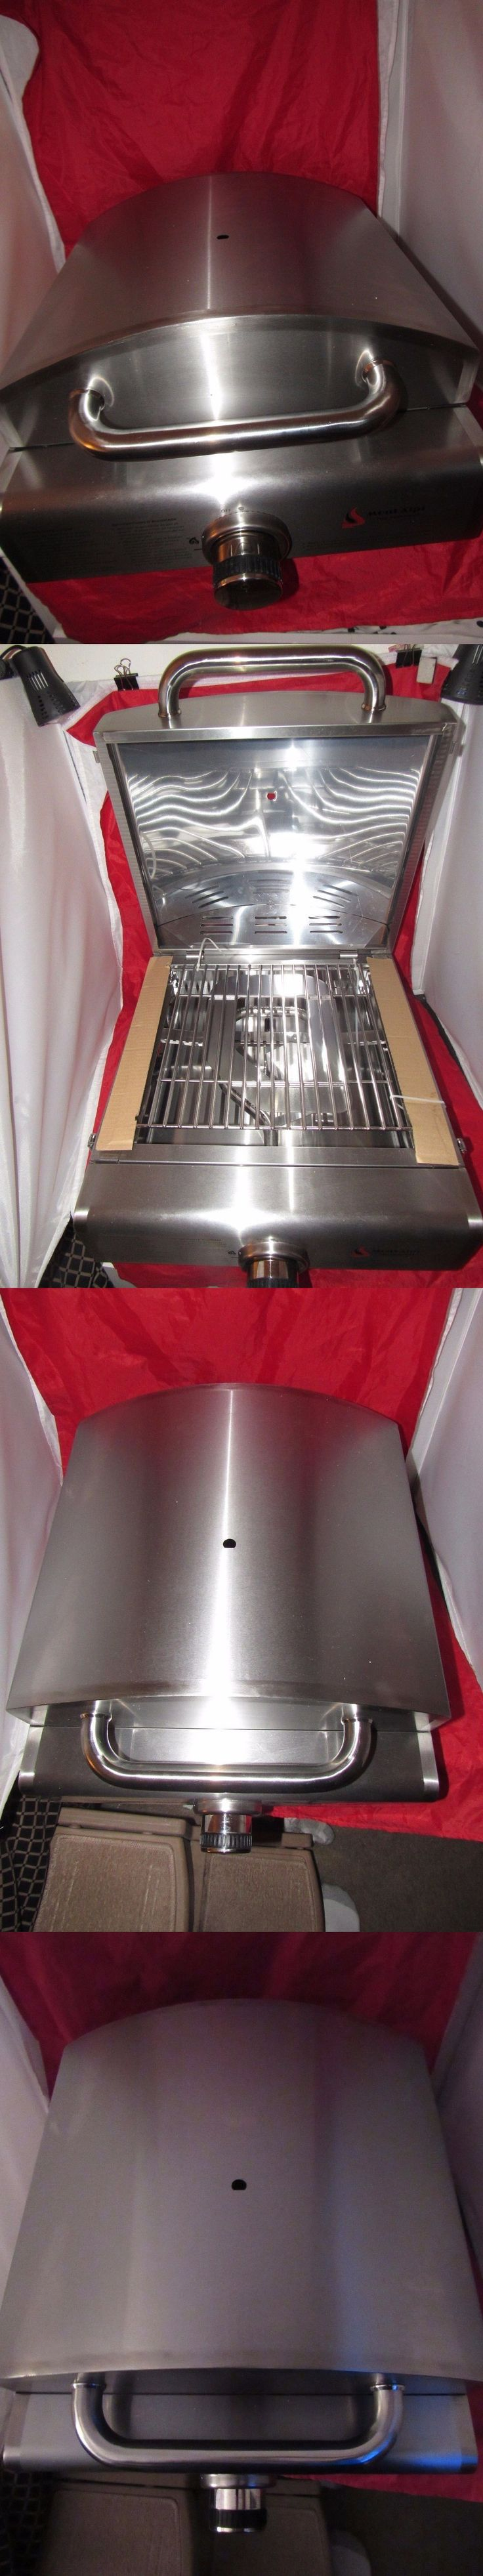 Camping Ovens 181387: Mont Alpi 3 In 1 Pizza Oven Grill (Missing Pizza Stone) -> BUY IT NOW ONLY: $149.95 on eBay!